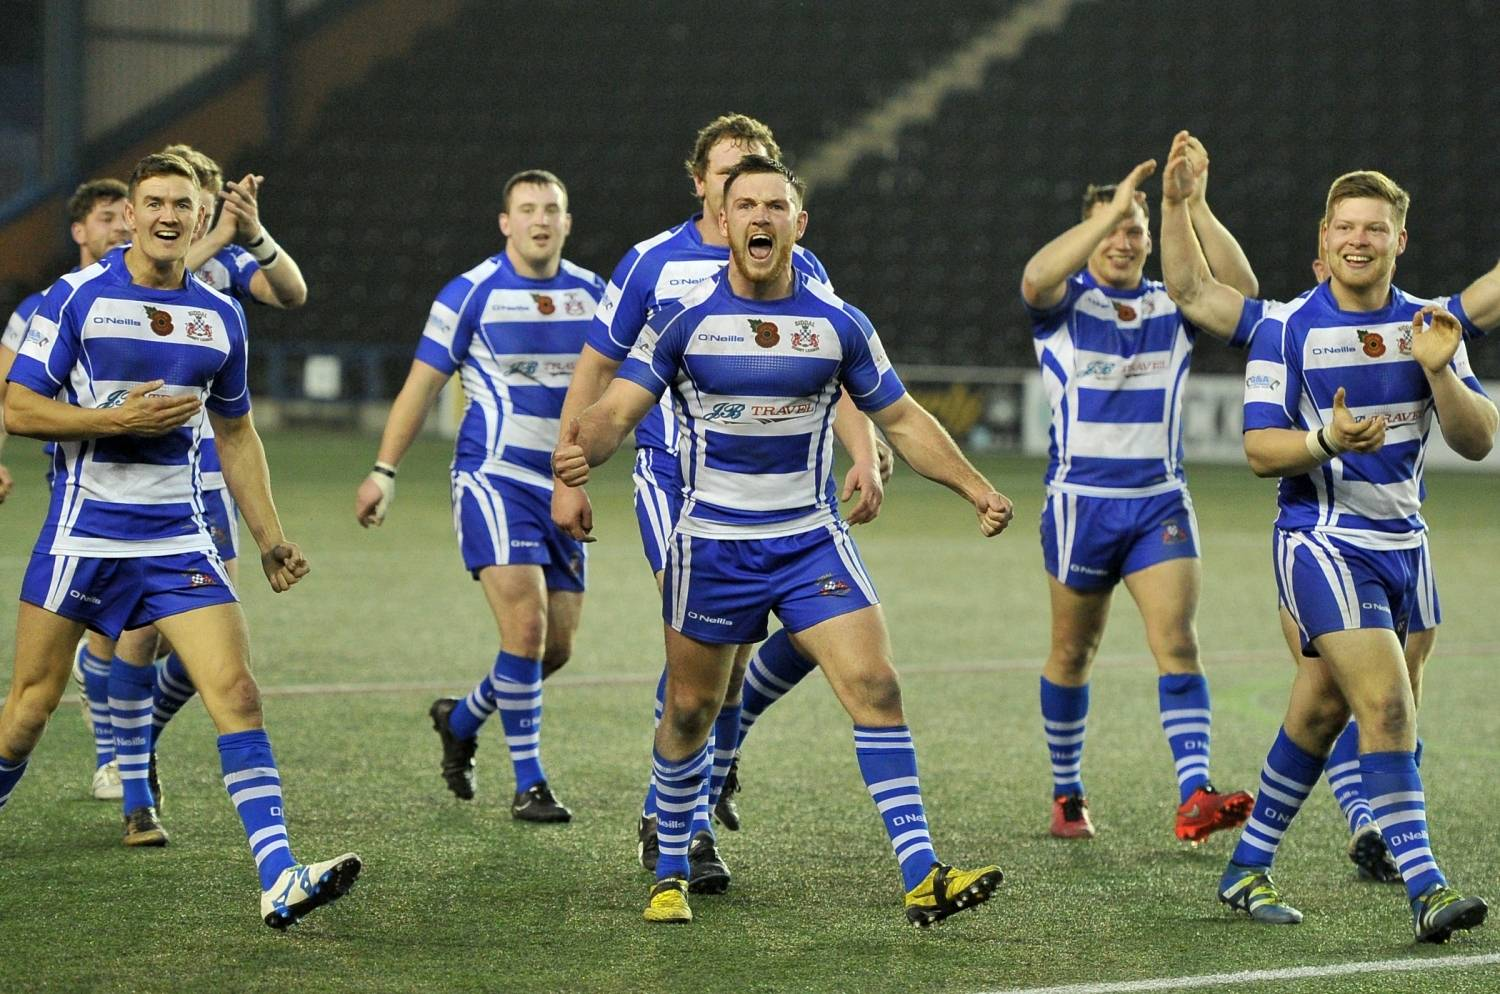 Siddal RL seek new Head Coach